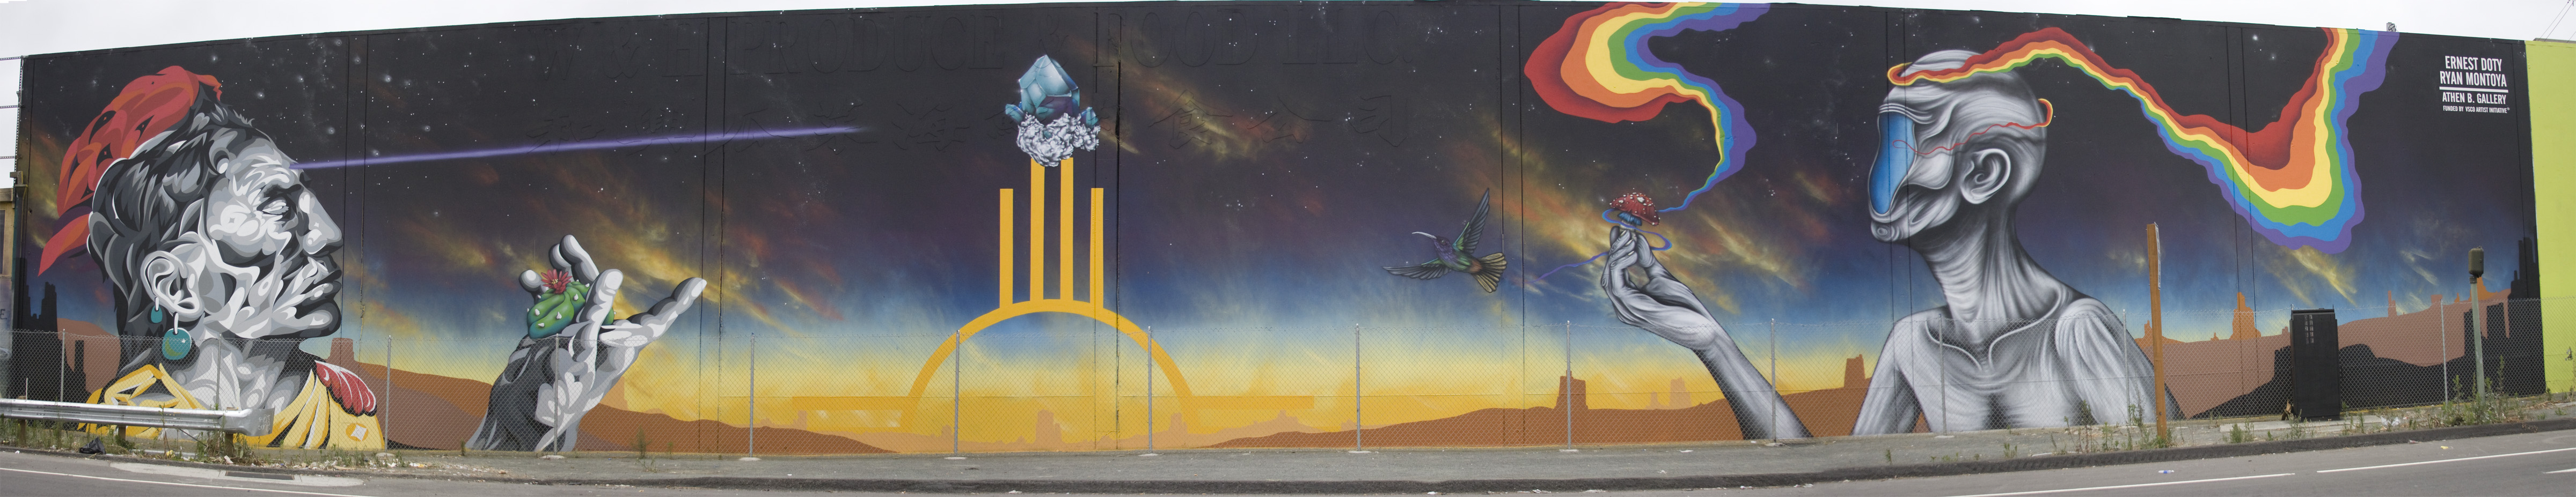 Ernest Doty and Ryan Montoya mural in Jack London Area of Oakland